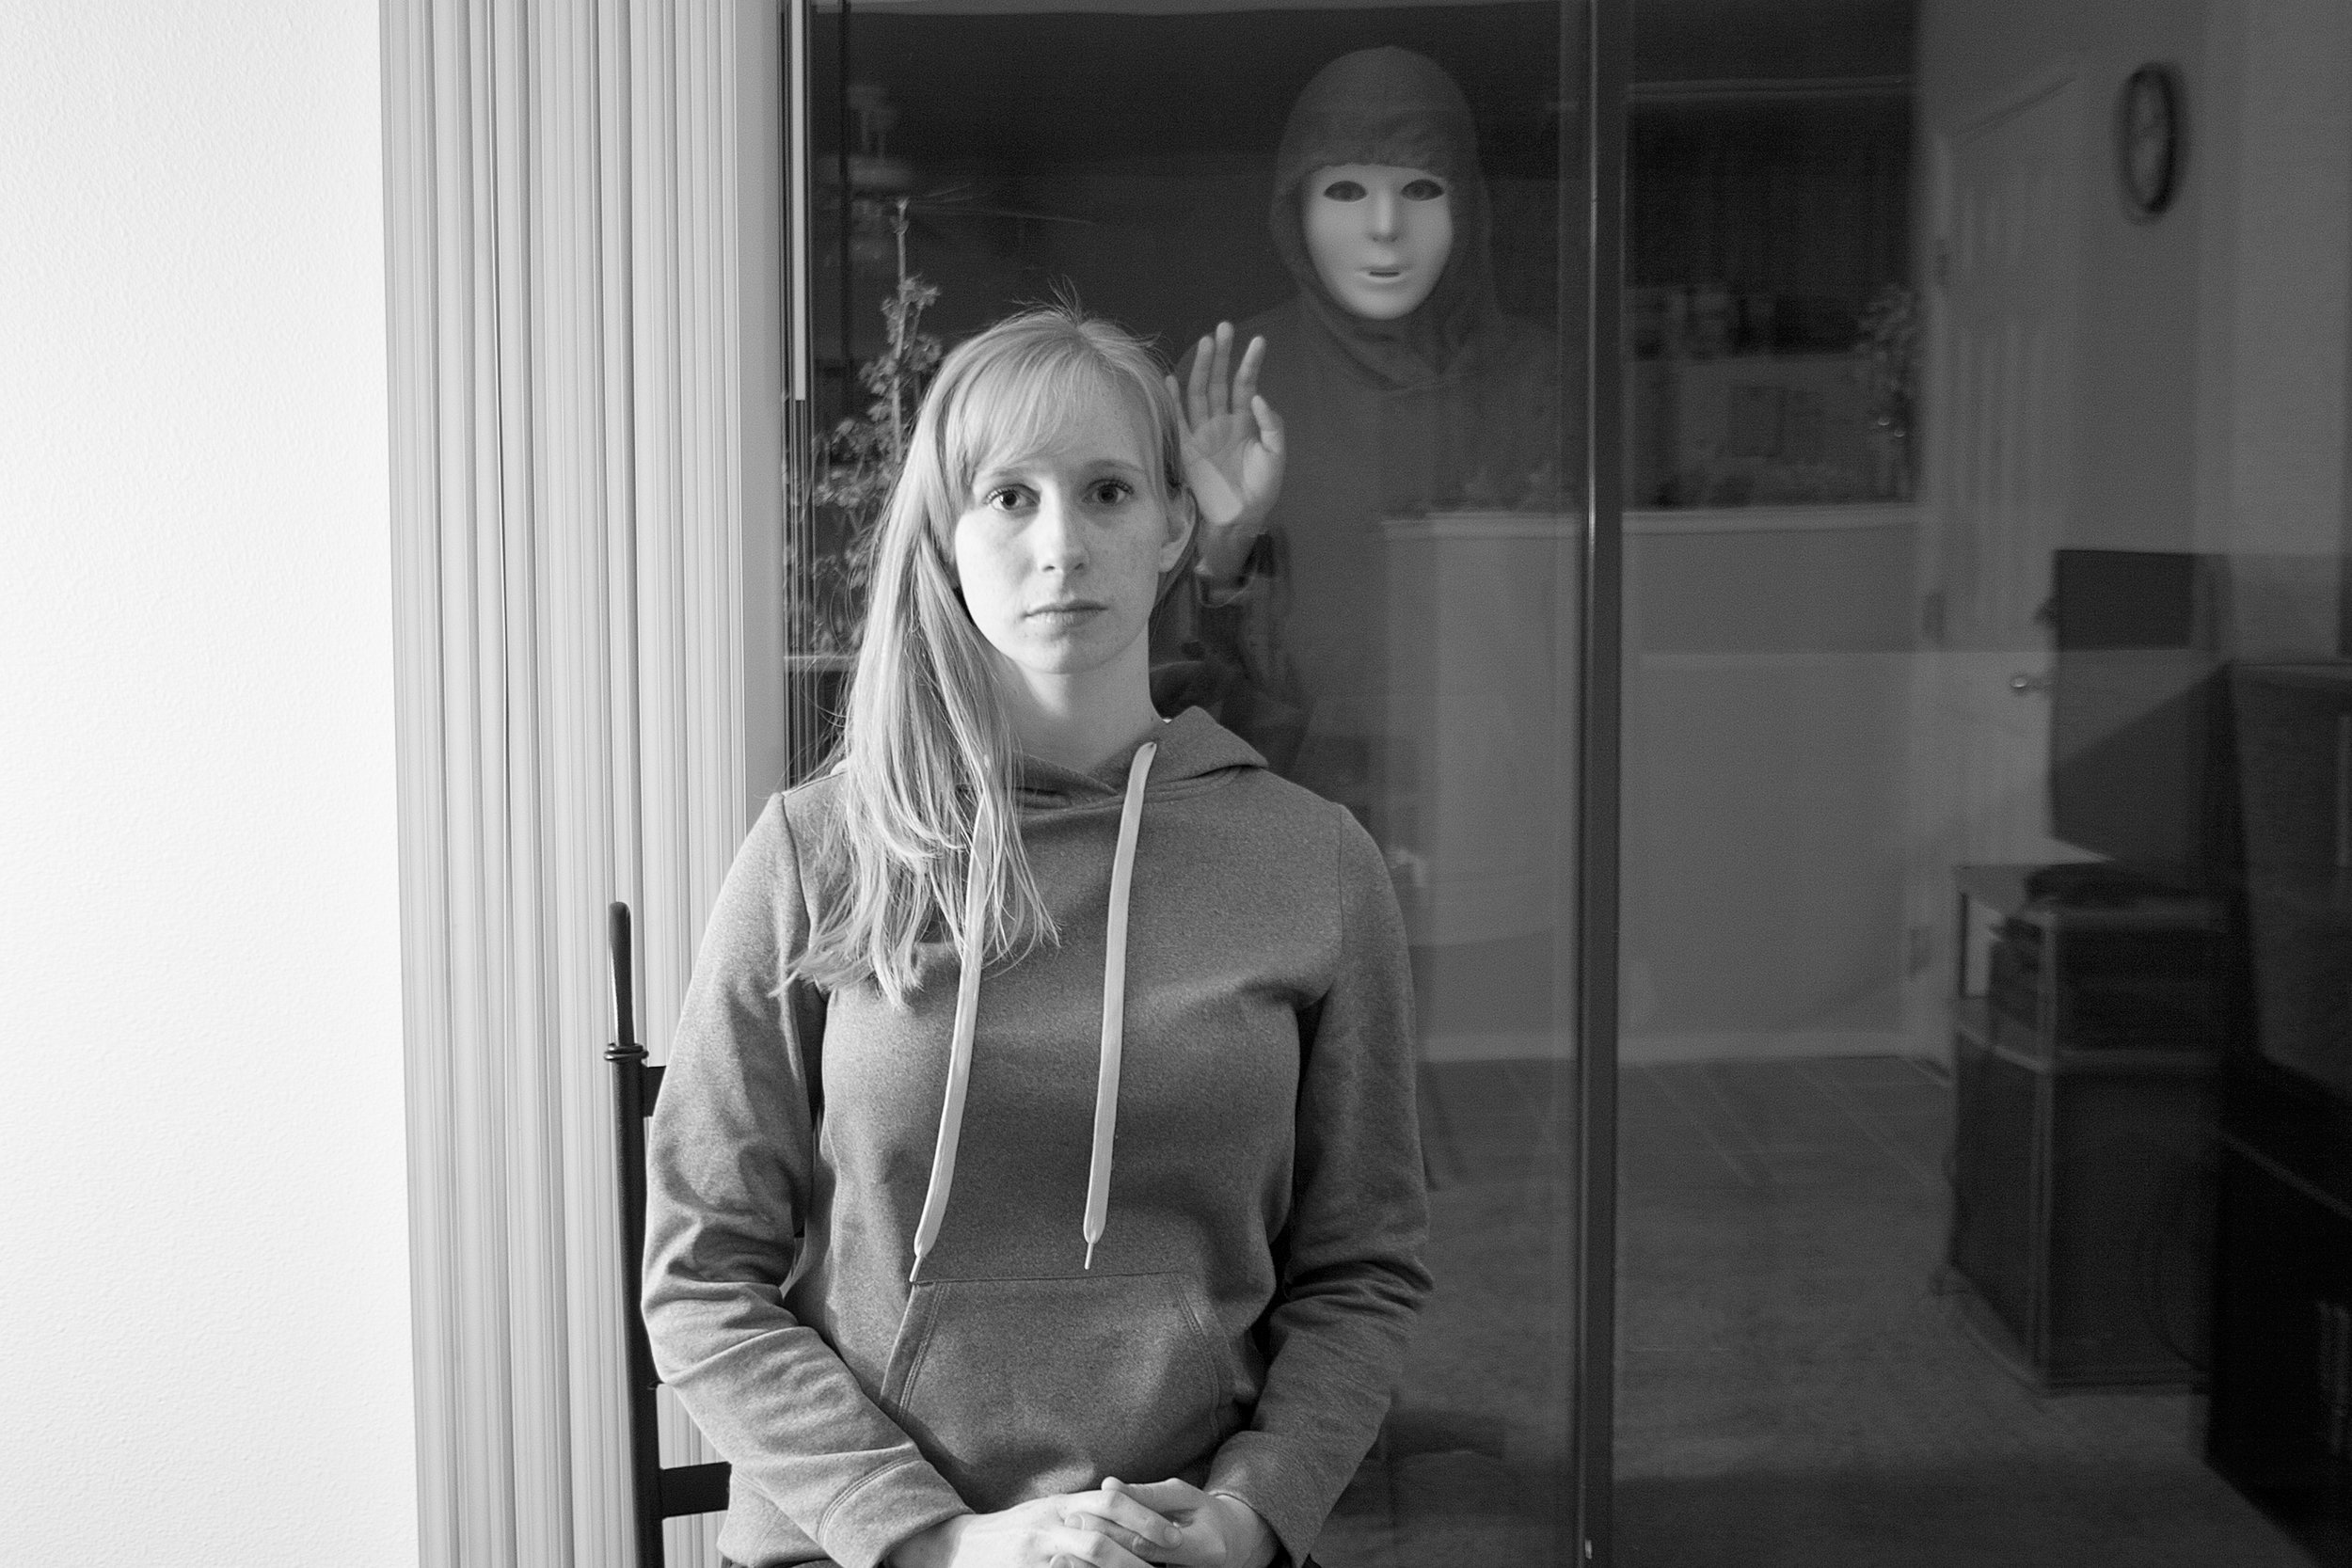 I always feel like there is someone standing outside of my house, looking in the windows, watching, waiting